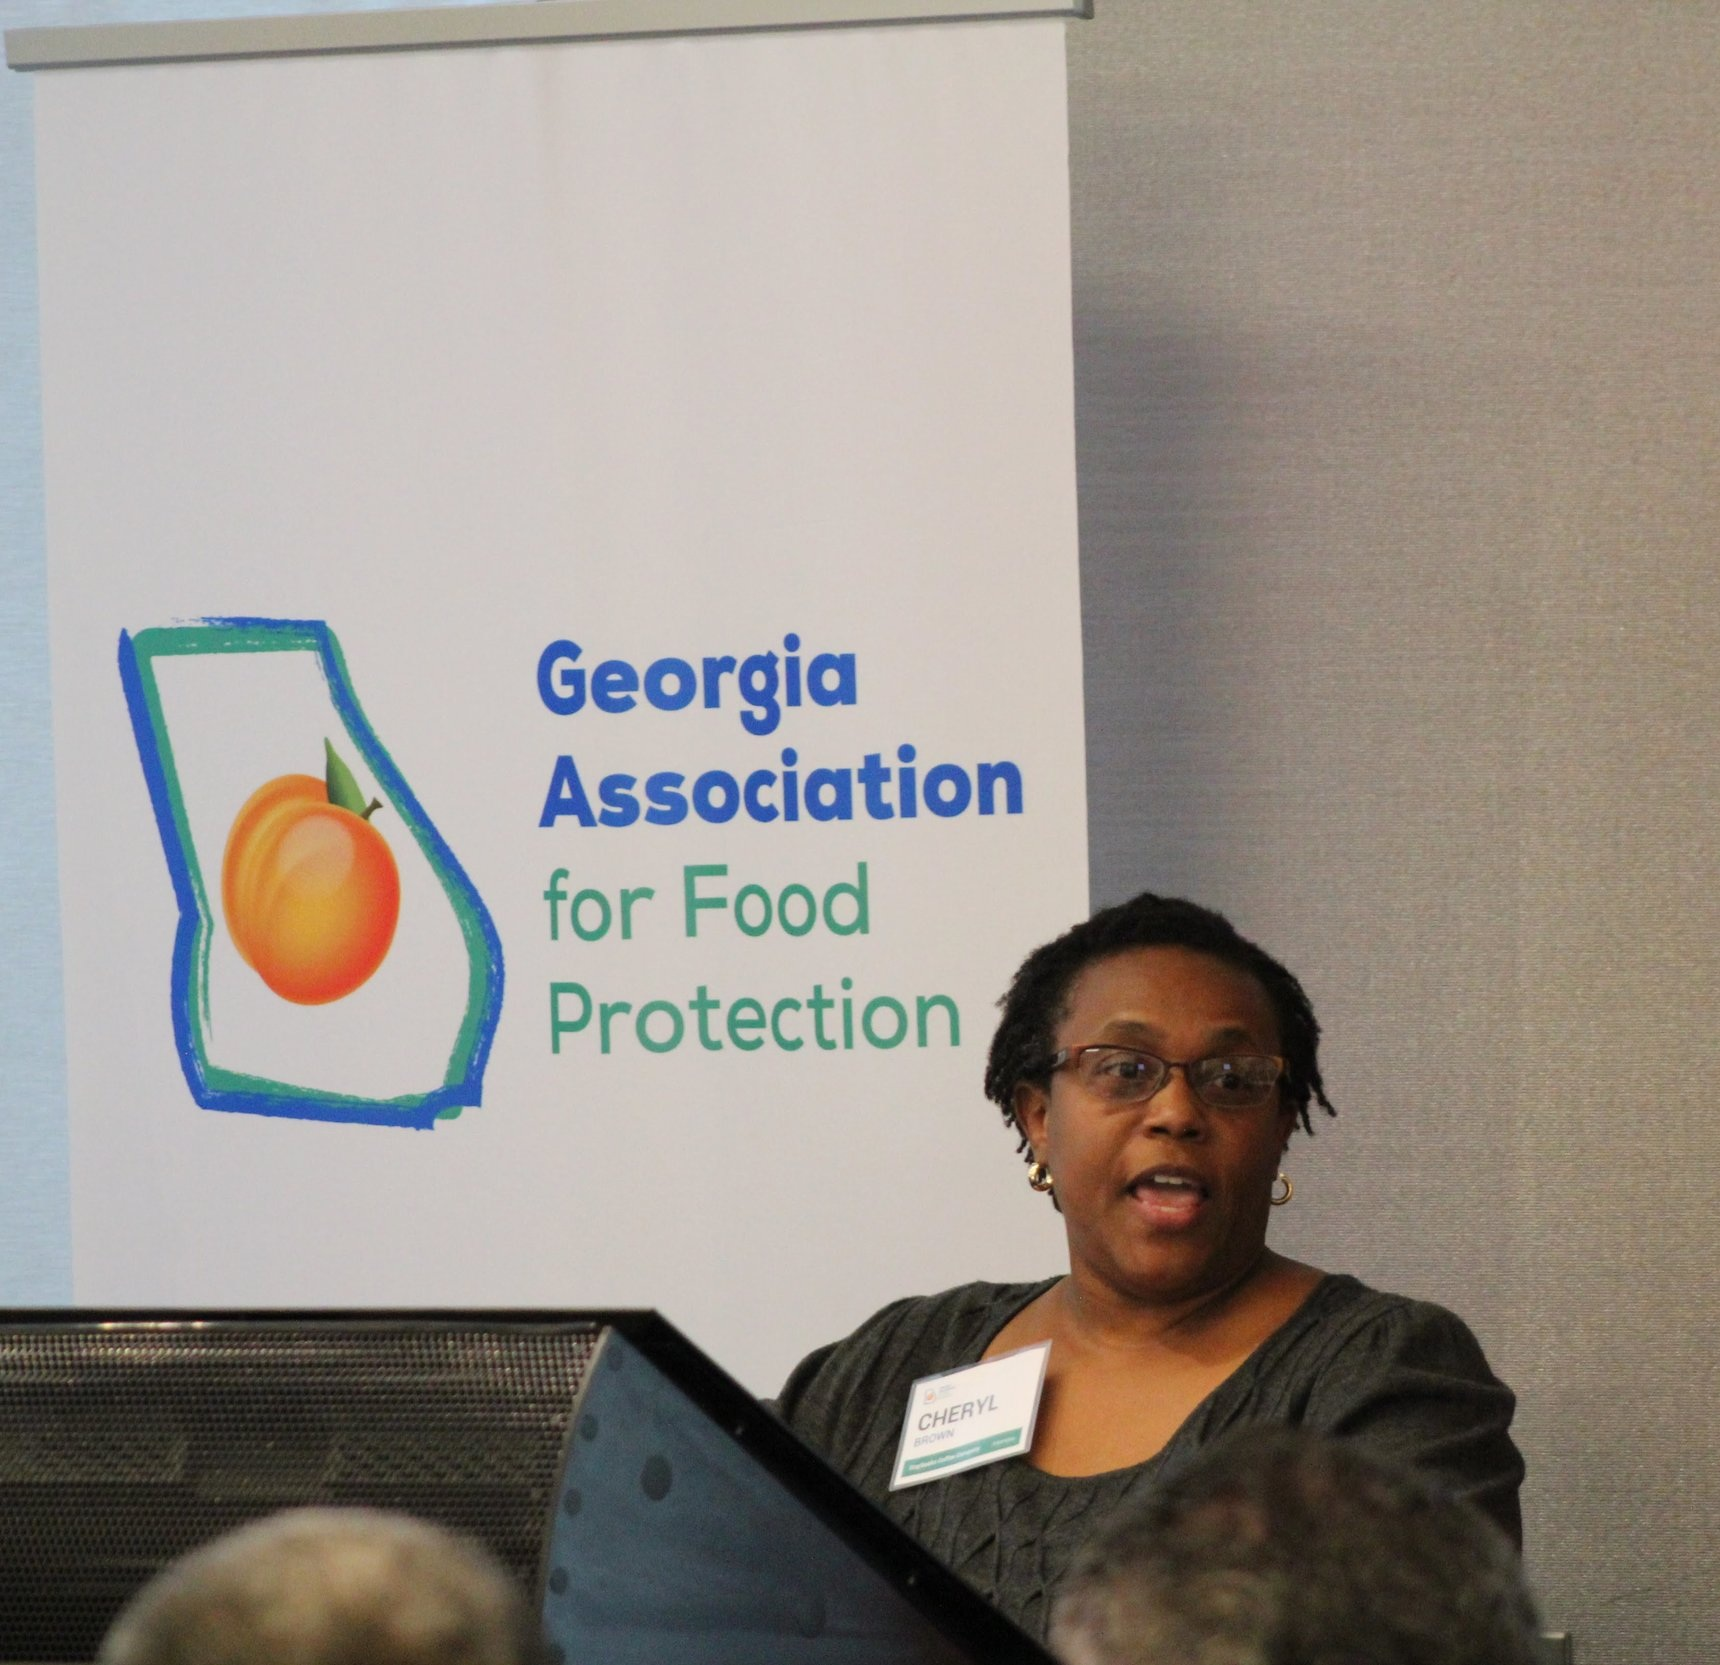 Cheryl Brown, President - Cheryl Brown (Starbucks), is currently the Georgia Association for Food Protection's President.Contact: chebrown@starbucks.com